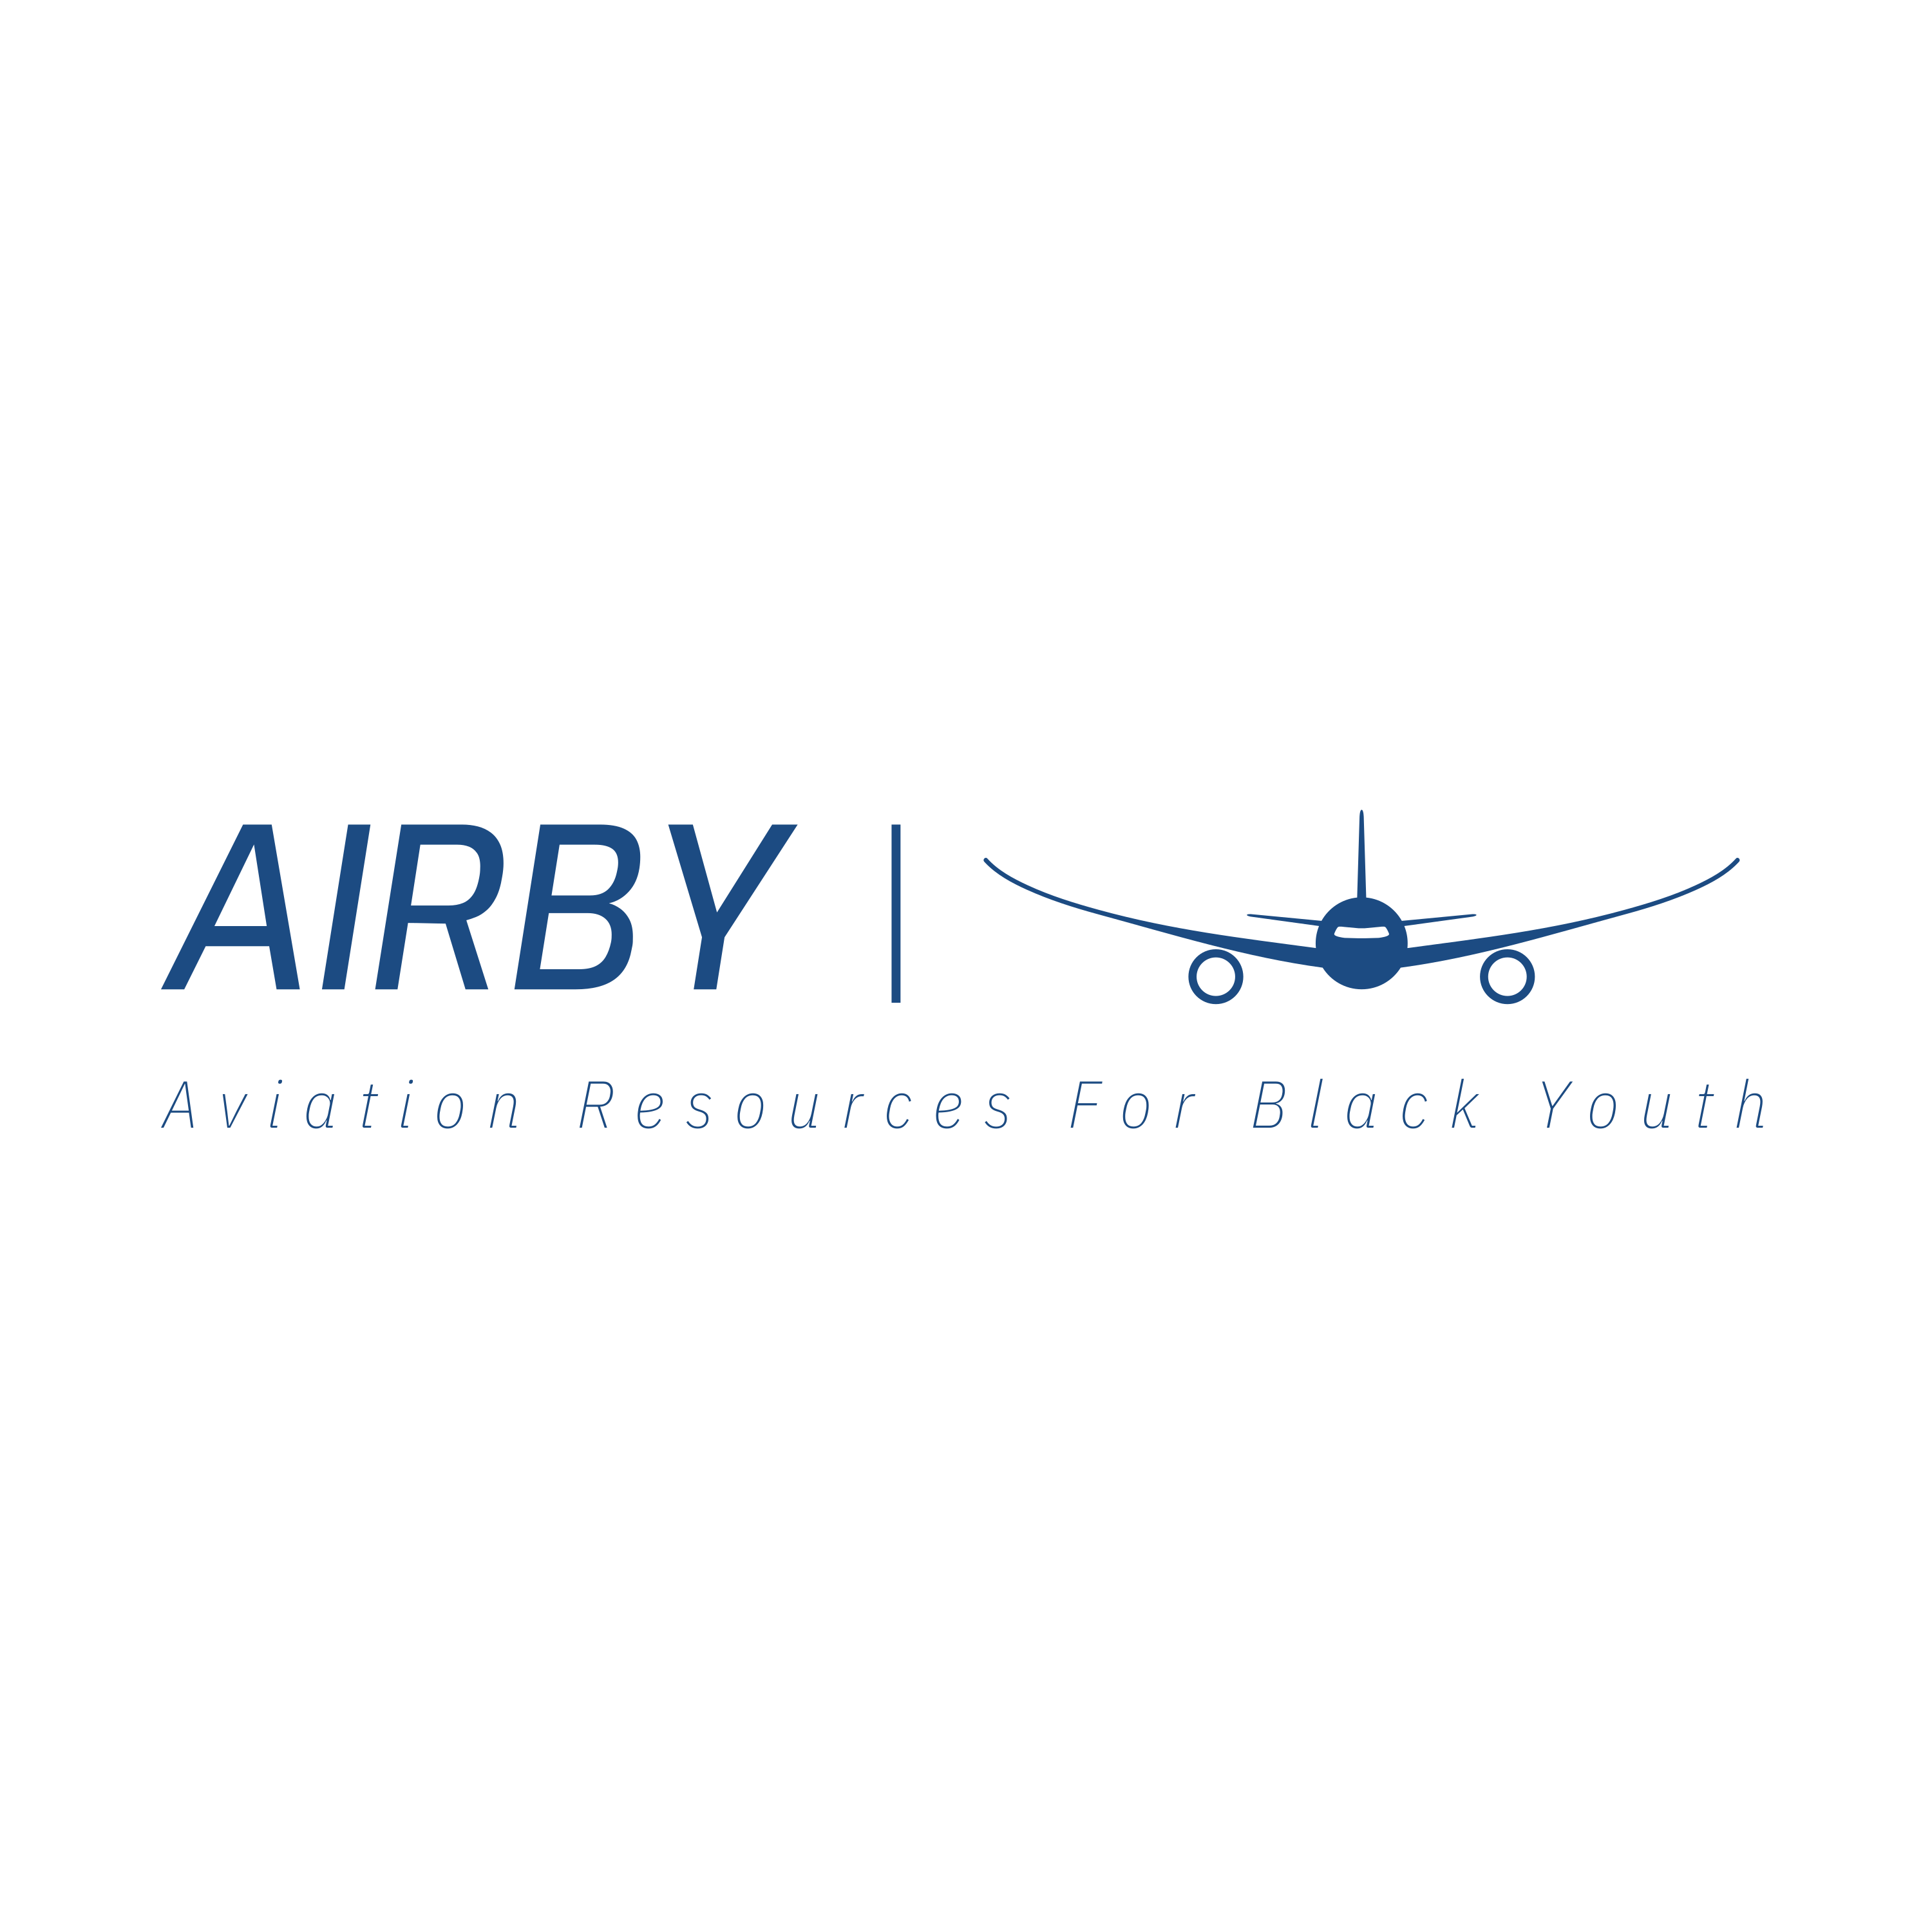 AIRBY